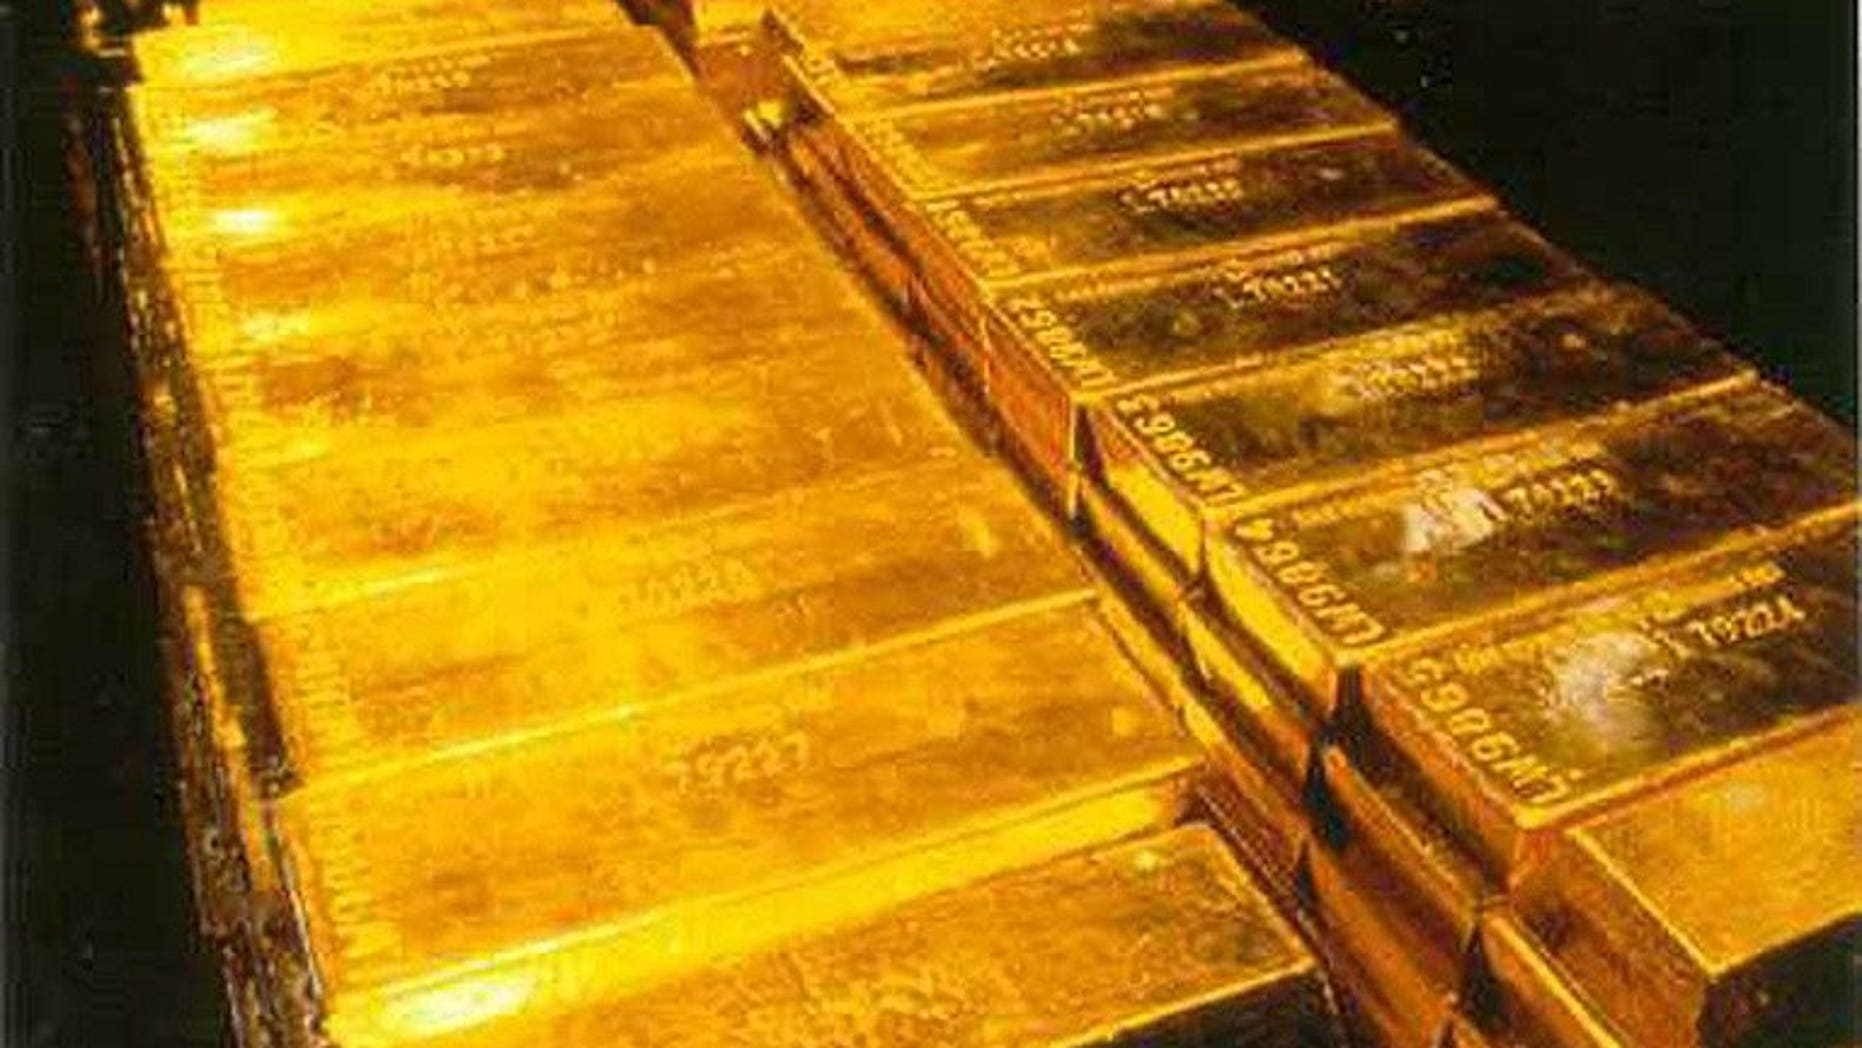 Gold bullion is stored inside a high-security vault in London, on September 28, 1999. Nepal police have seized 35 kilograms (77 pounds) of gold, smuggled over the border from China and bound for India, where demand for the precious metal is soaring.